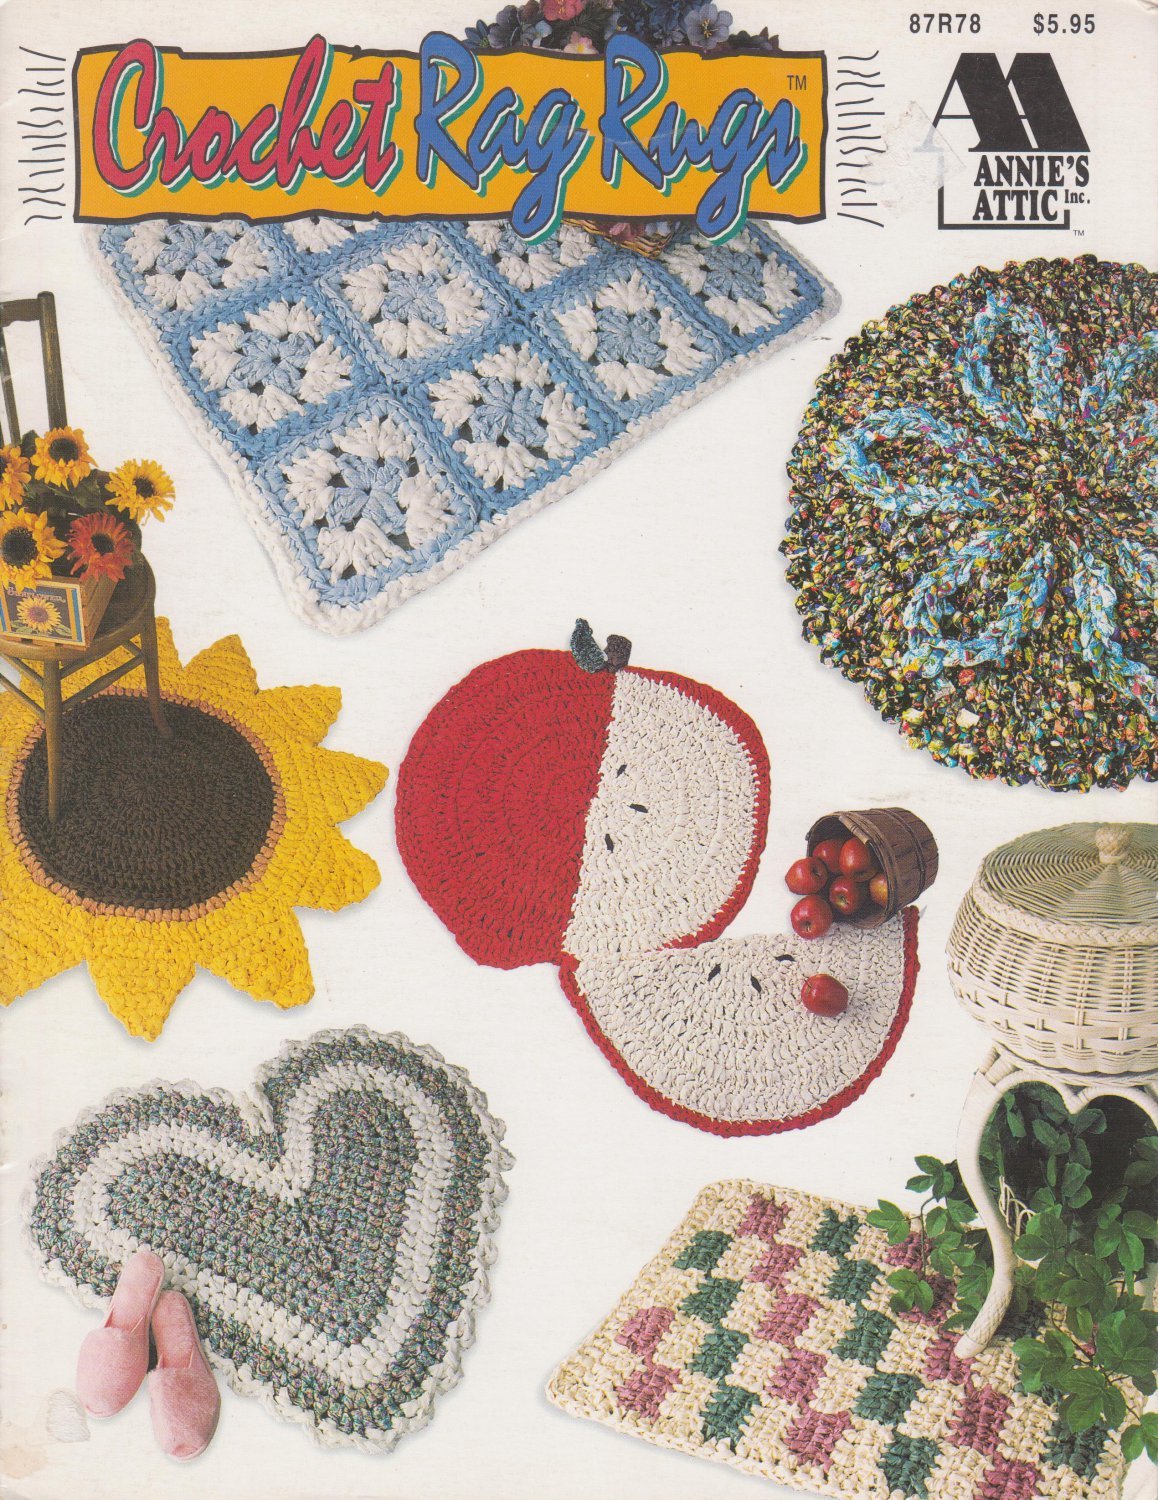 Annie's Attic 1994 Crochet Rag Rugs Patter Leaflet #87R78